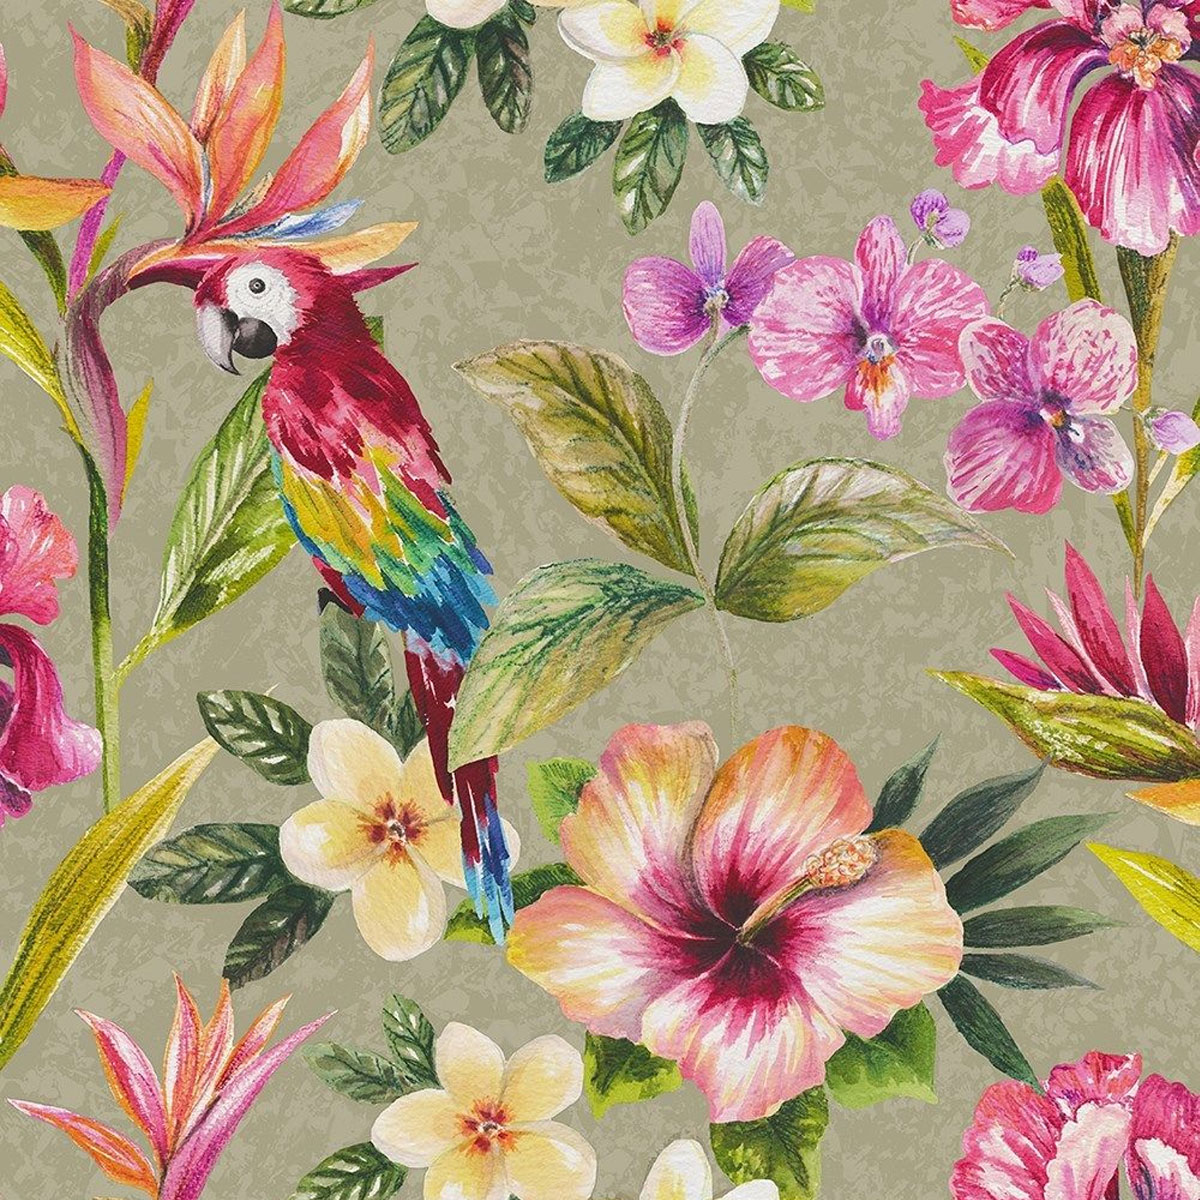 Tropical Parrot Wallpaper Birds Flowers Floral Leaves Leaf